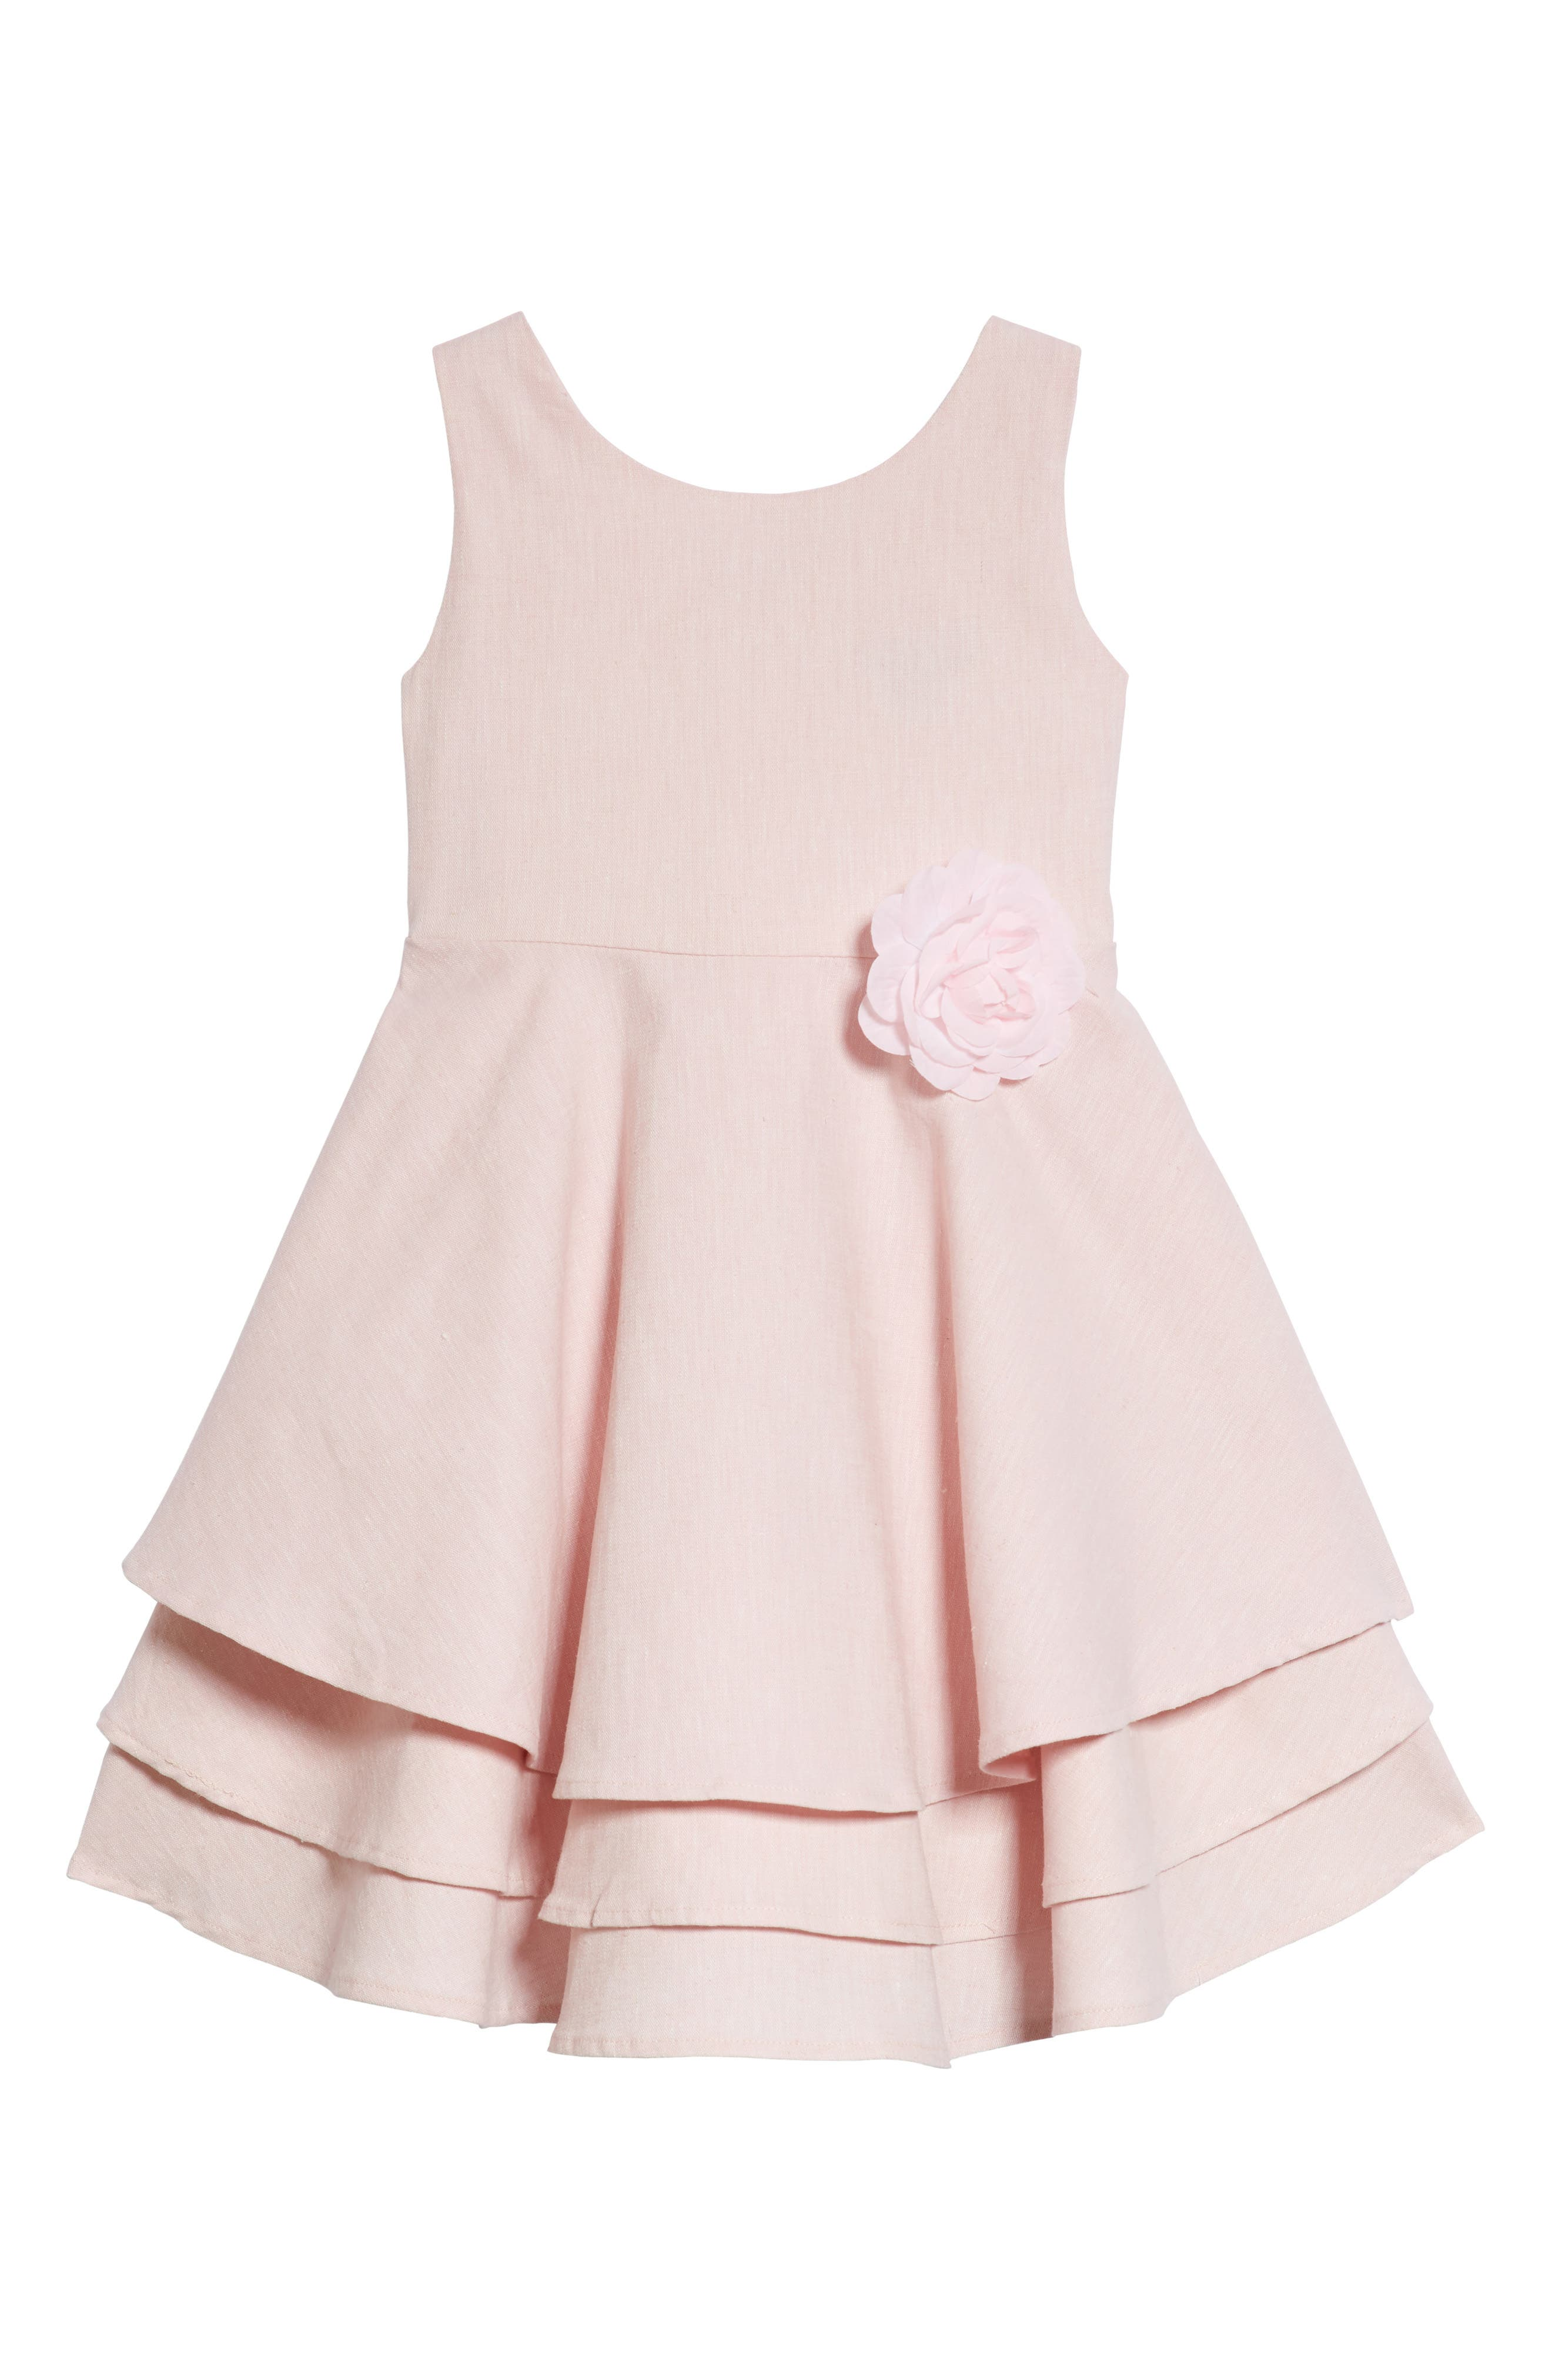 Main Image - Ava & Yelly Tiered Linen Blend Party Dress (Toddler Girls & Little Girls)